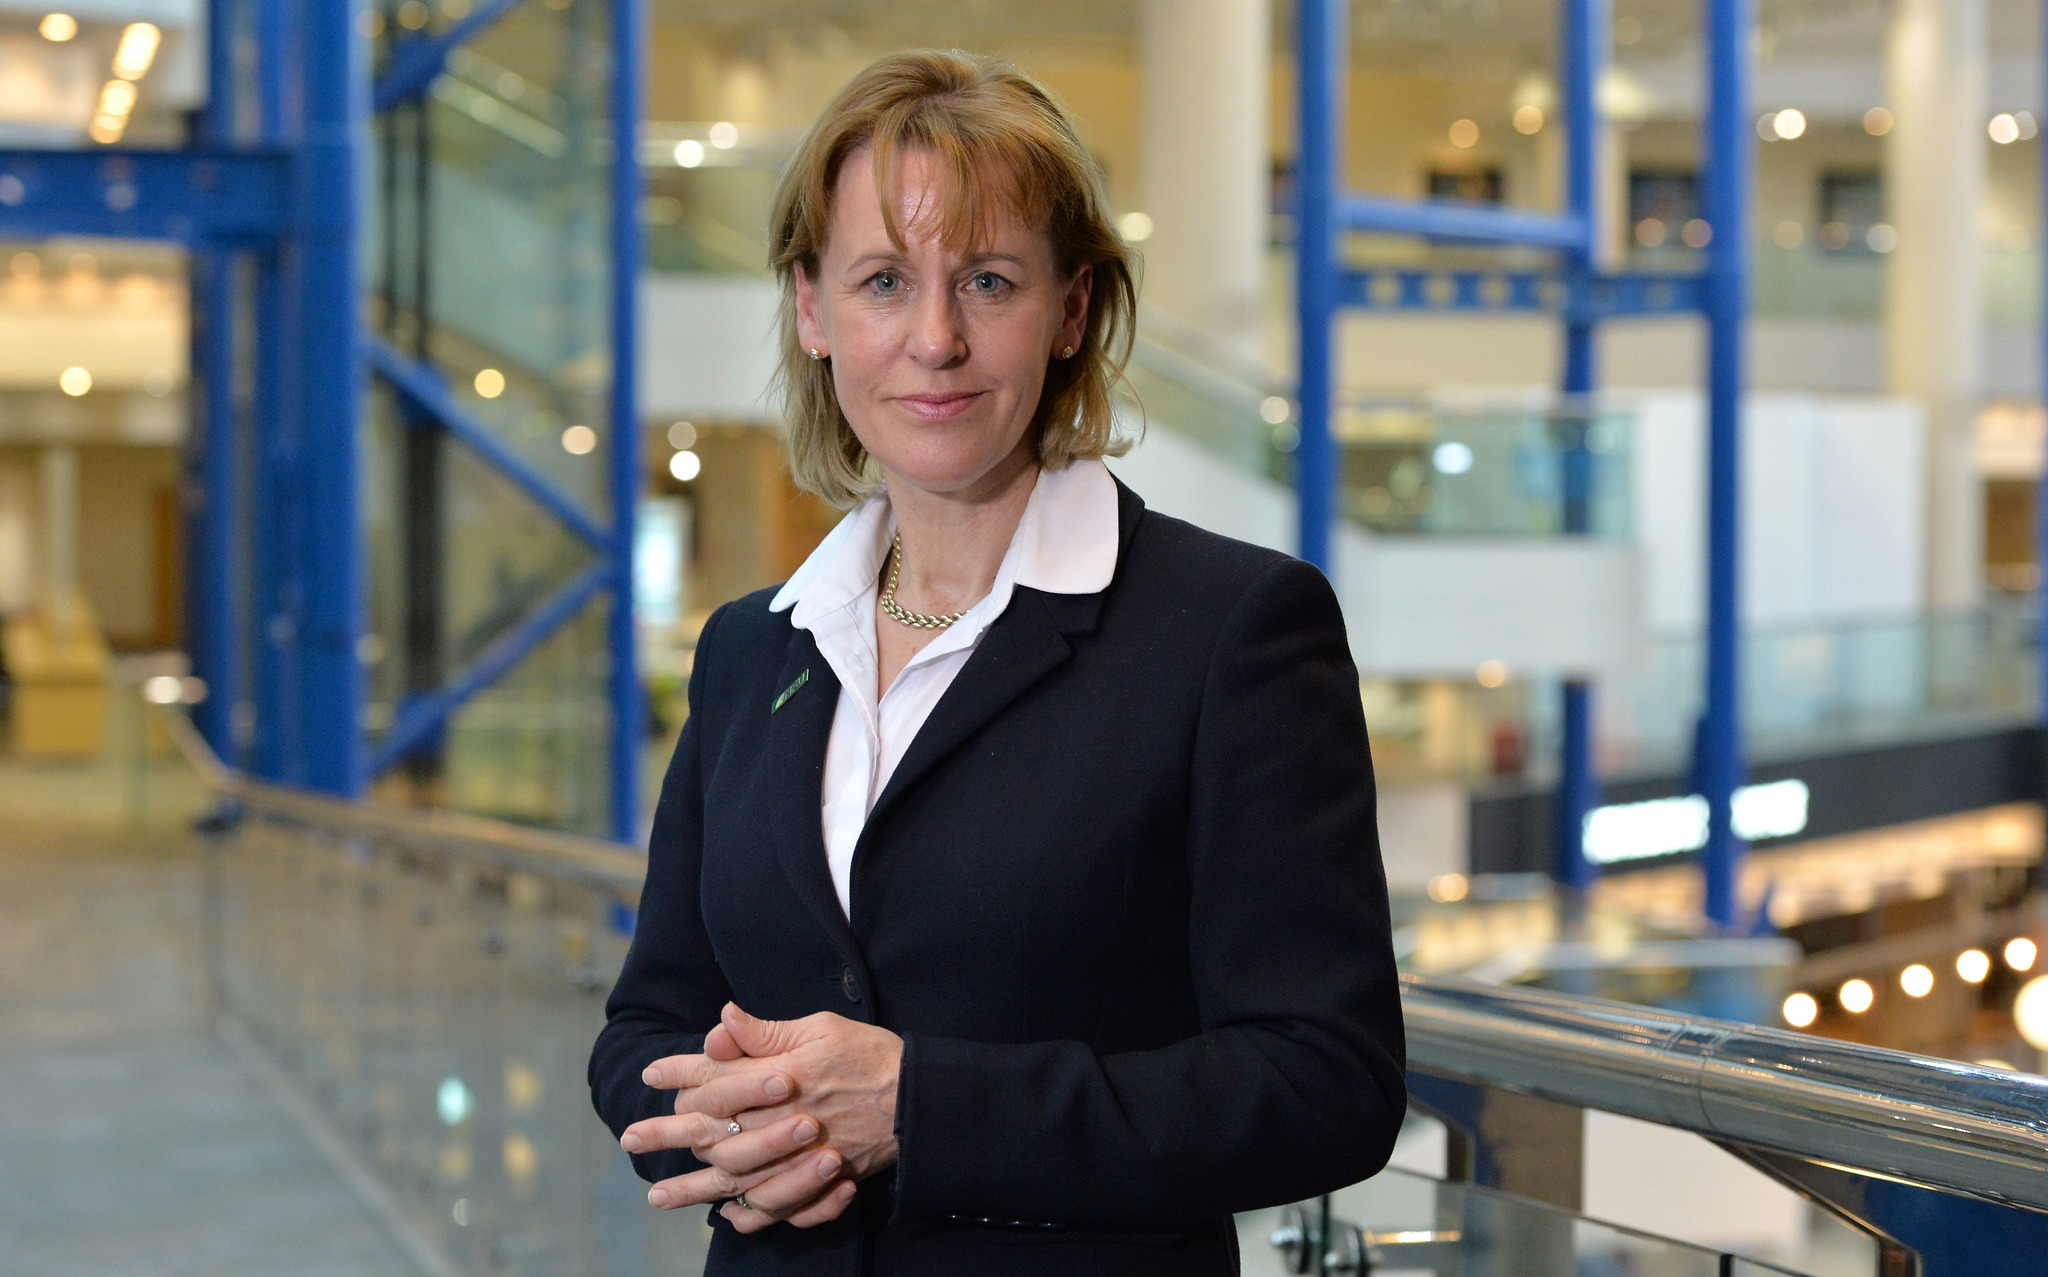 Minette Batters, who has been elected as the new president of the National Farmers' Union